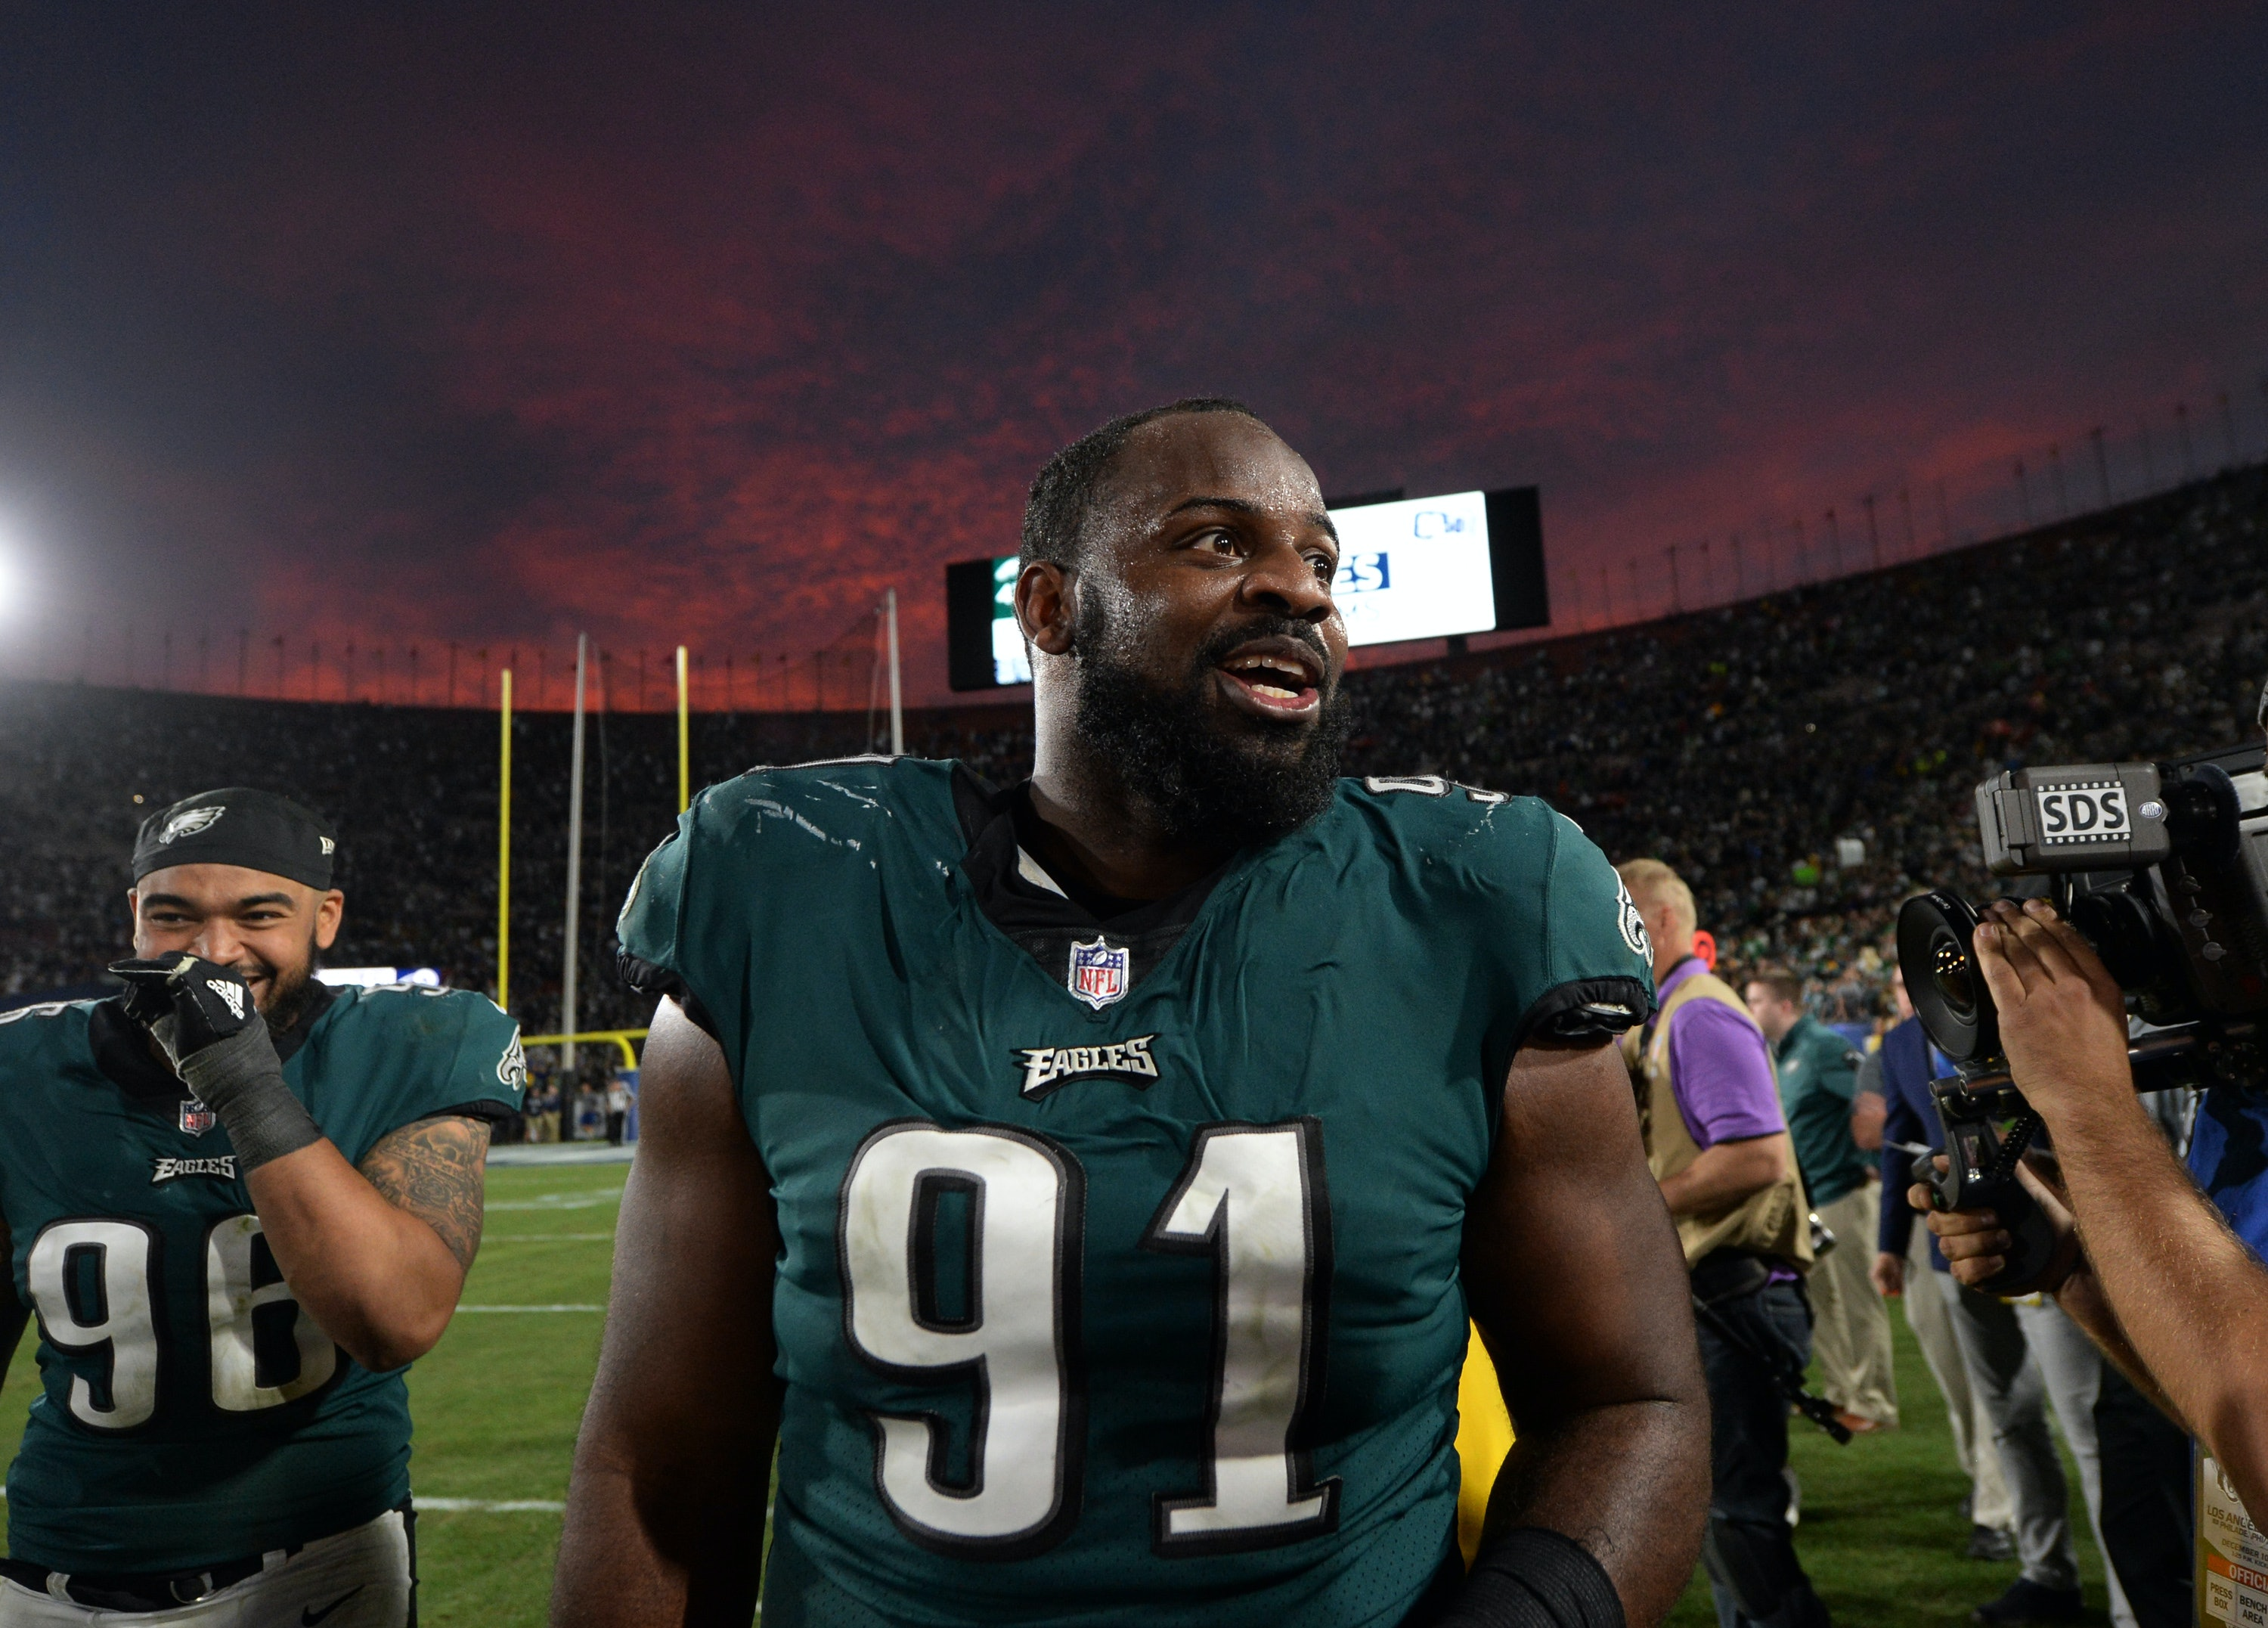 e76df8868e2 Fletcher Cox's Net Worth Will Make You Wish You Could Join The NFL